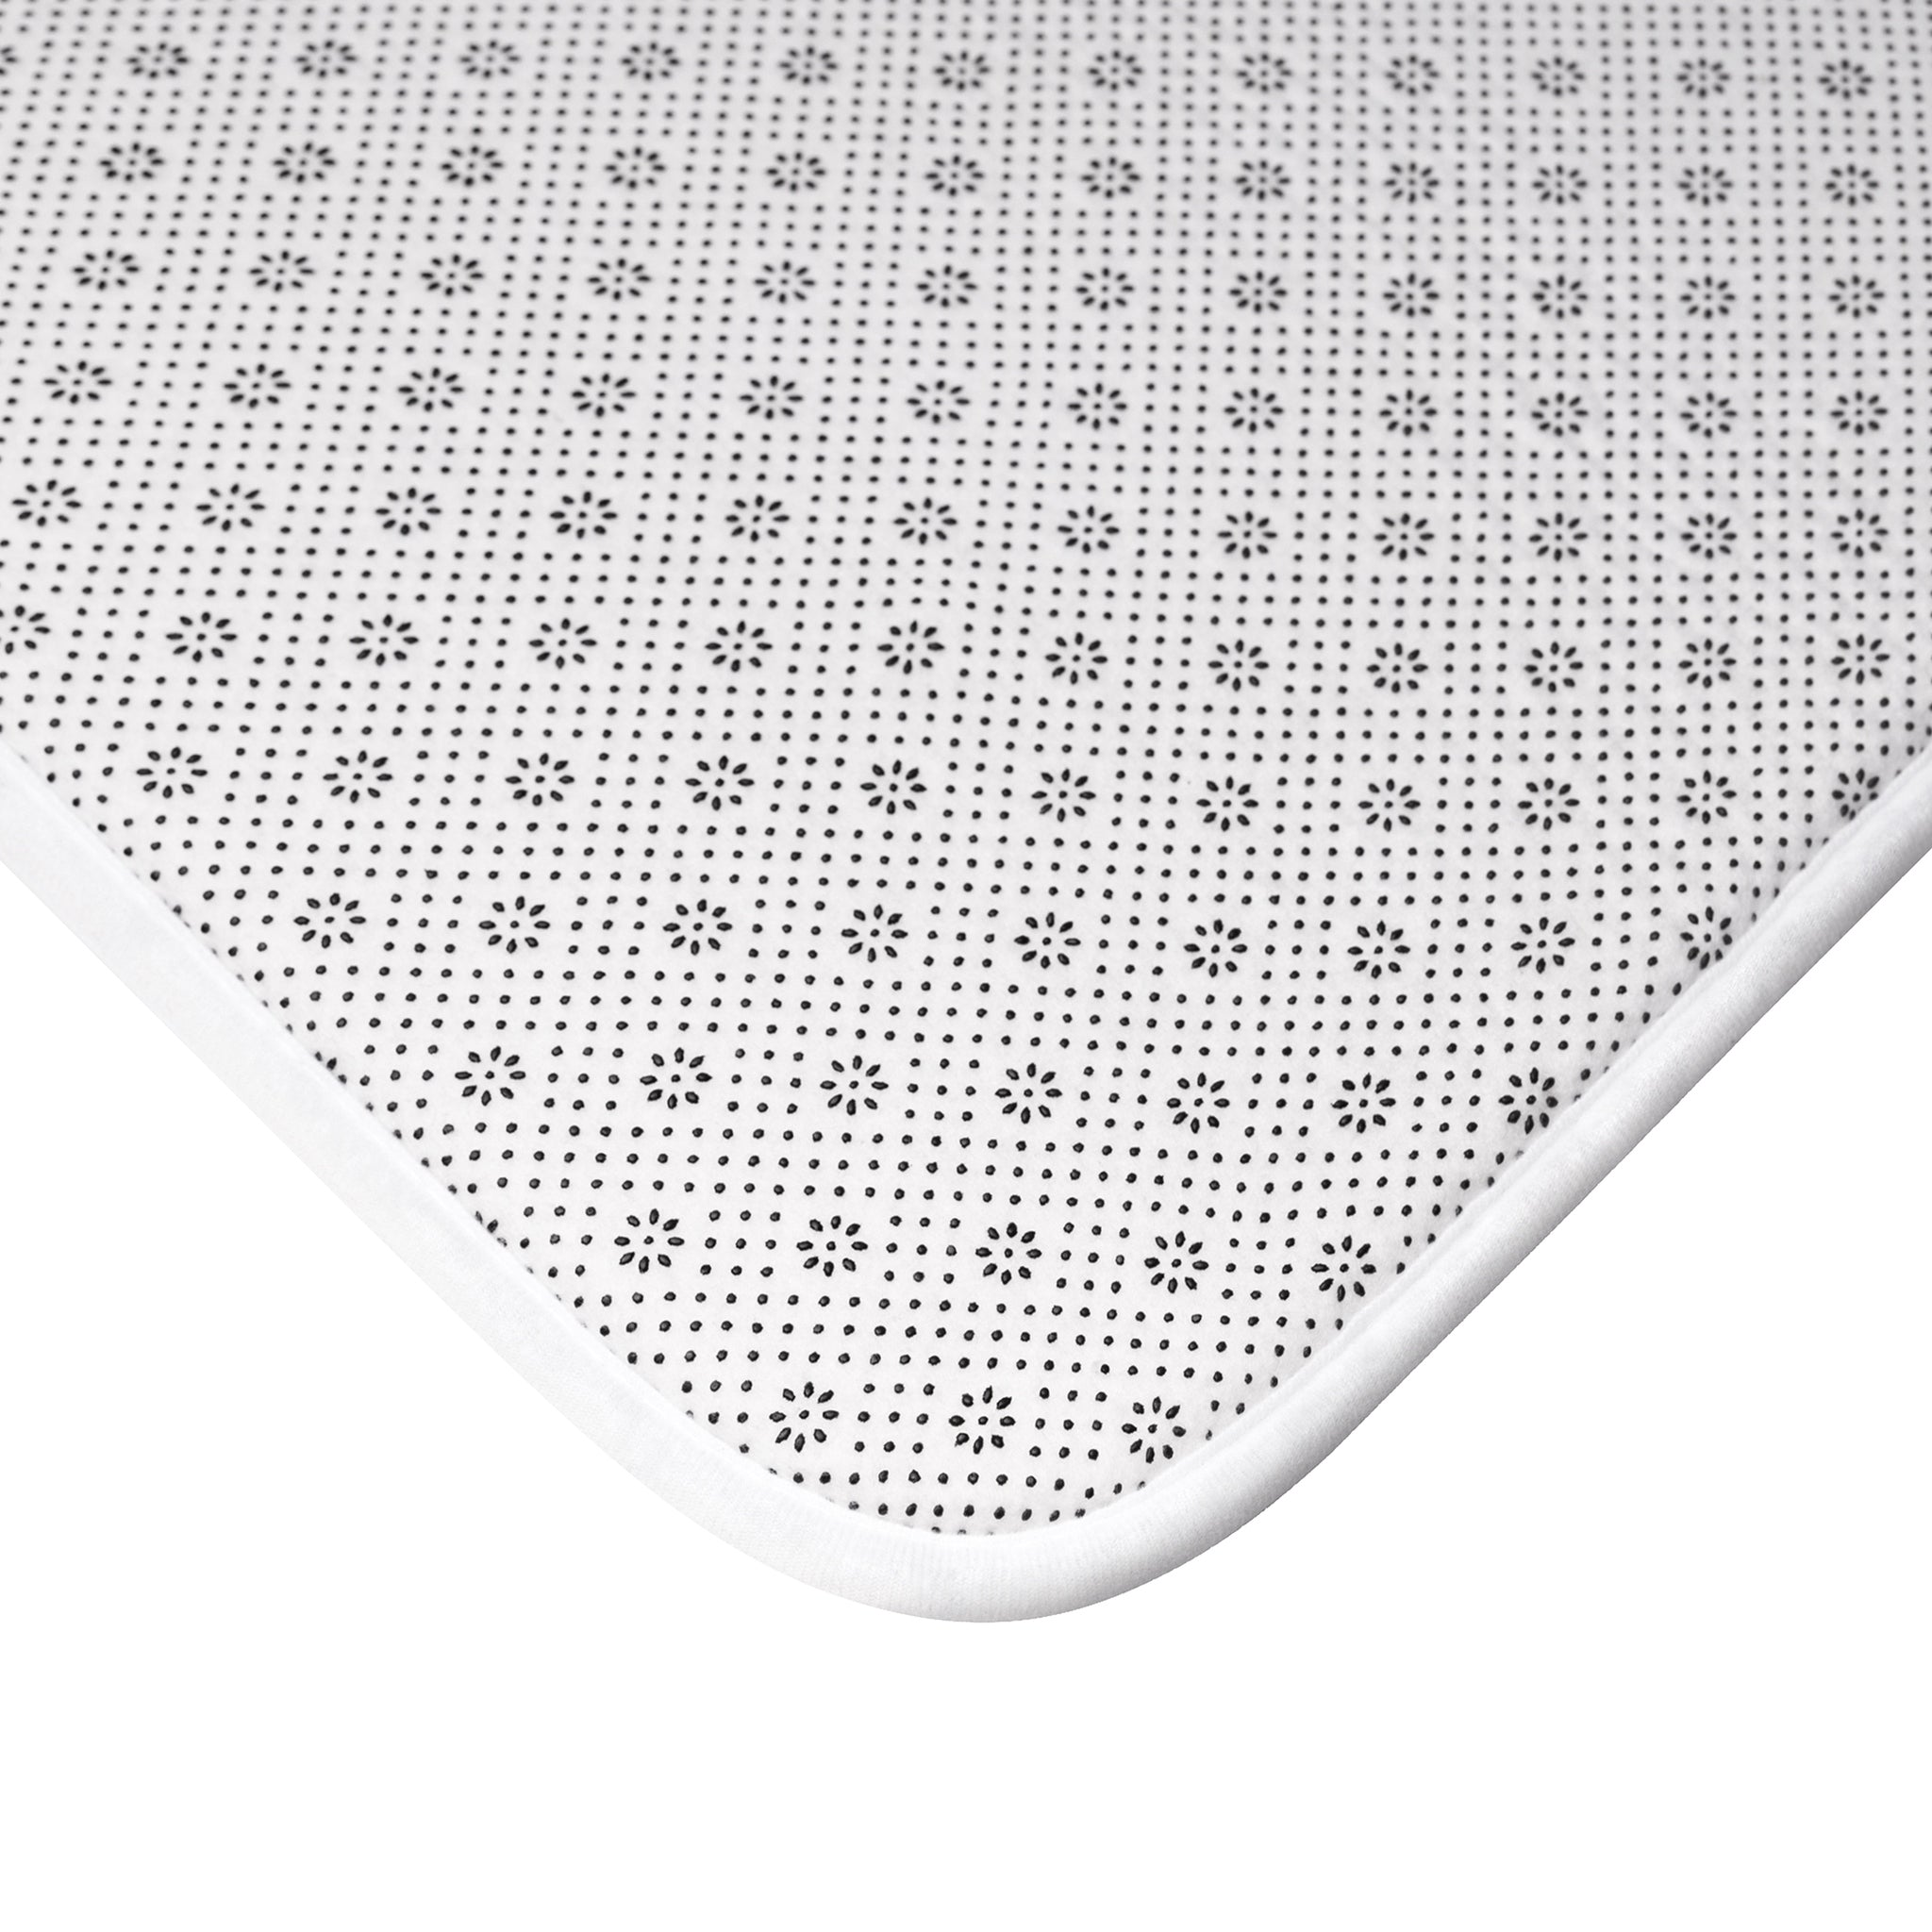 Lookin' Sharp Bath Mat